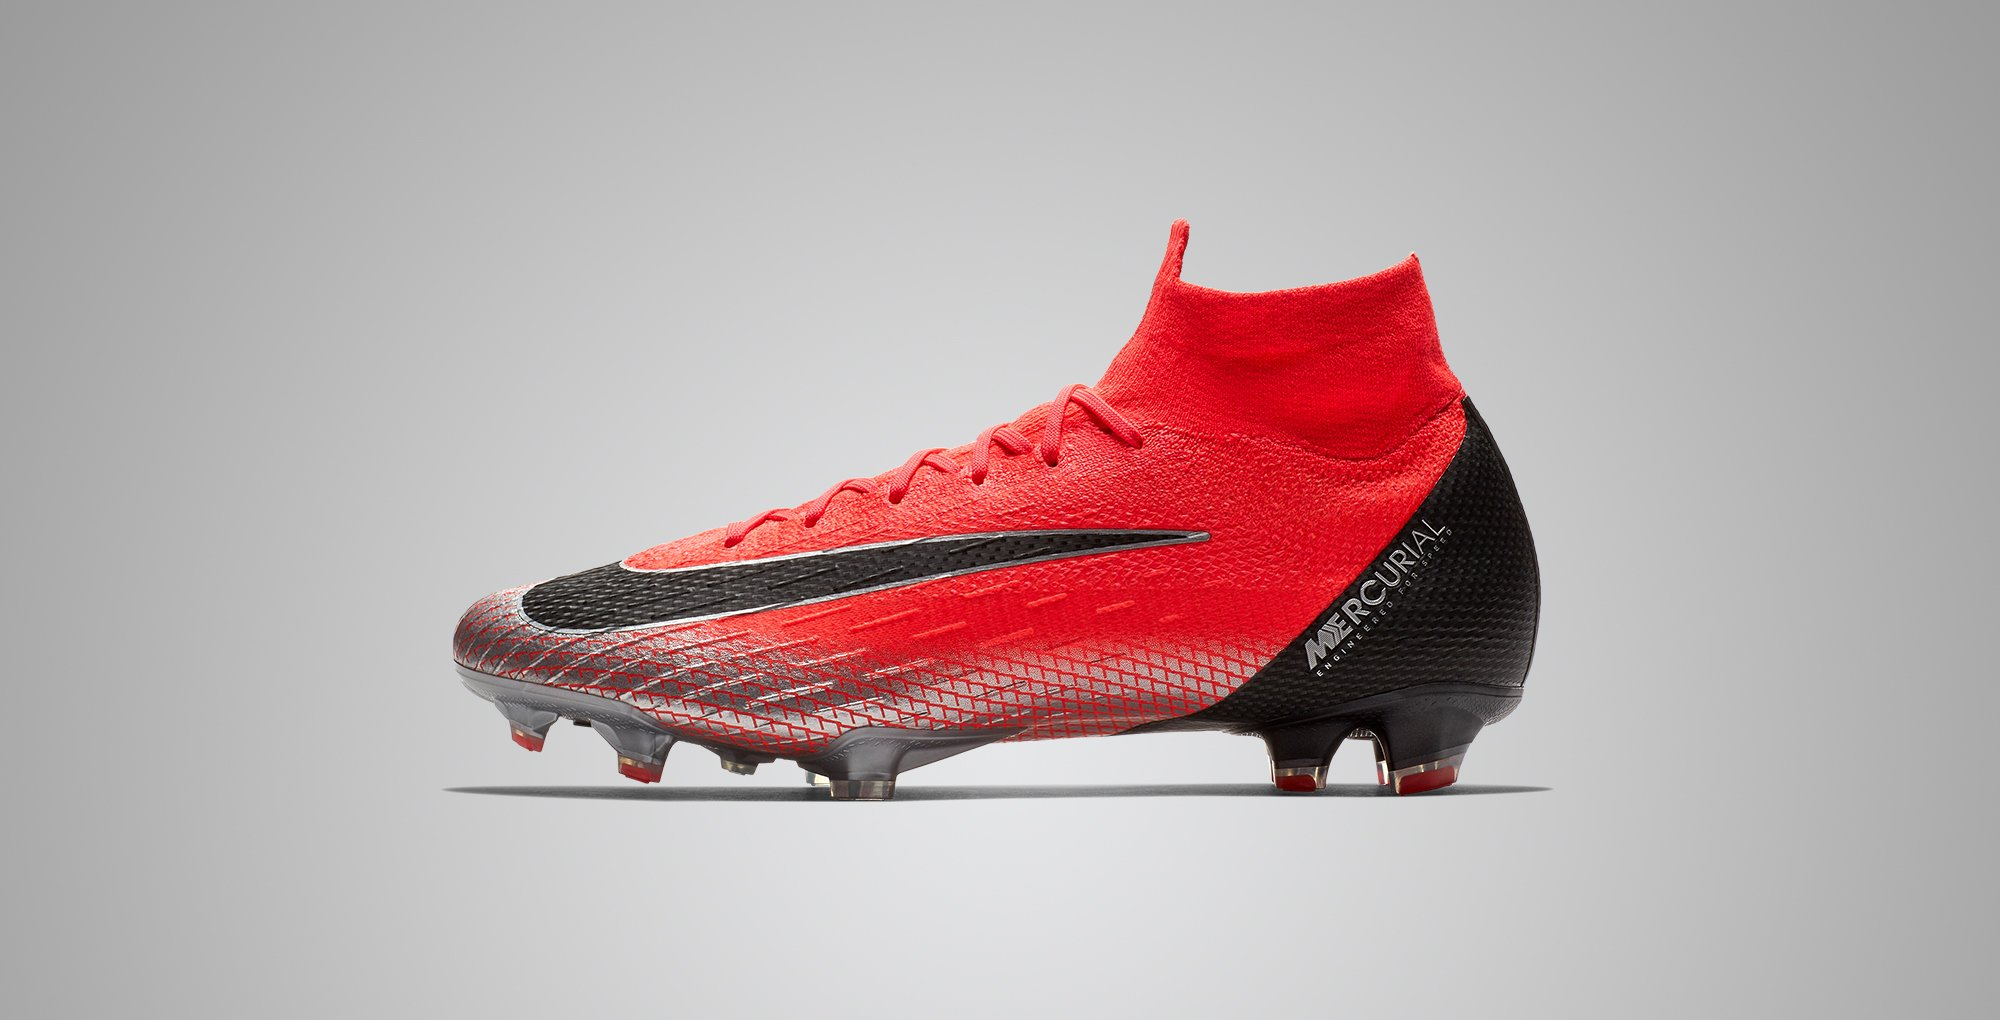 198f14c9e Shop the CR7 Chapter 7 collection. Nike Mercurial Superfly VI CR7 Elite FG Football  Boots